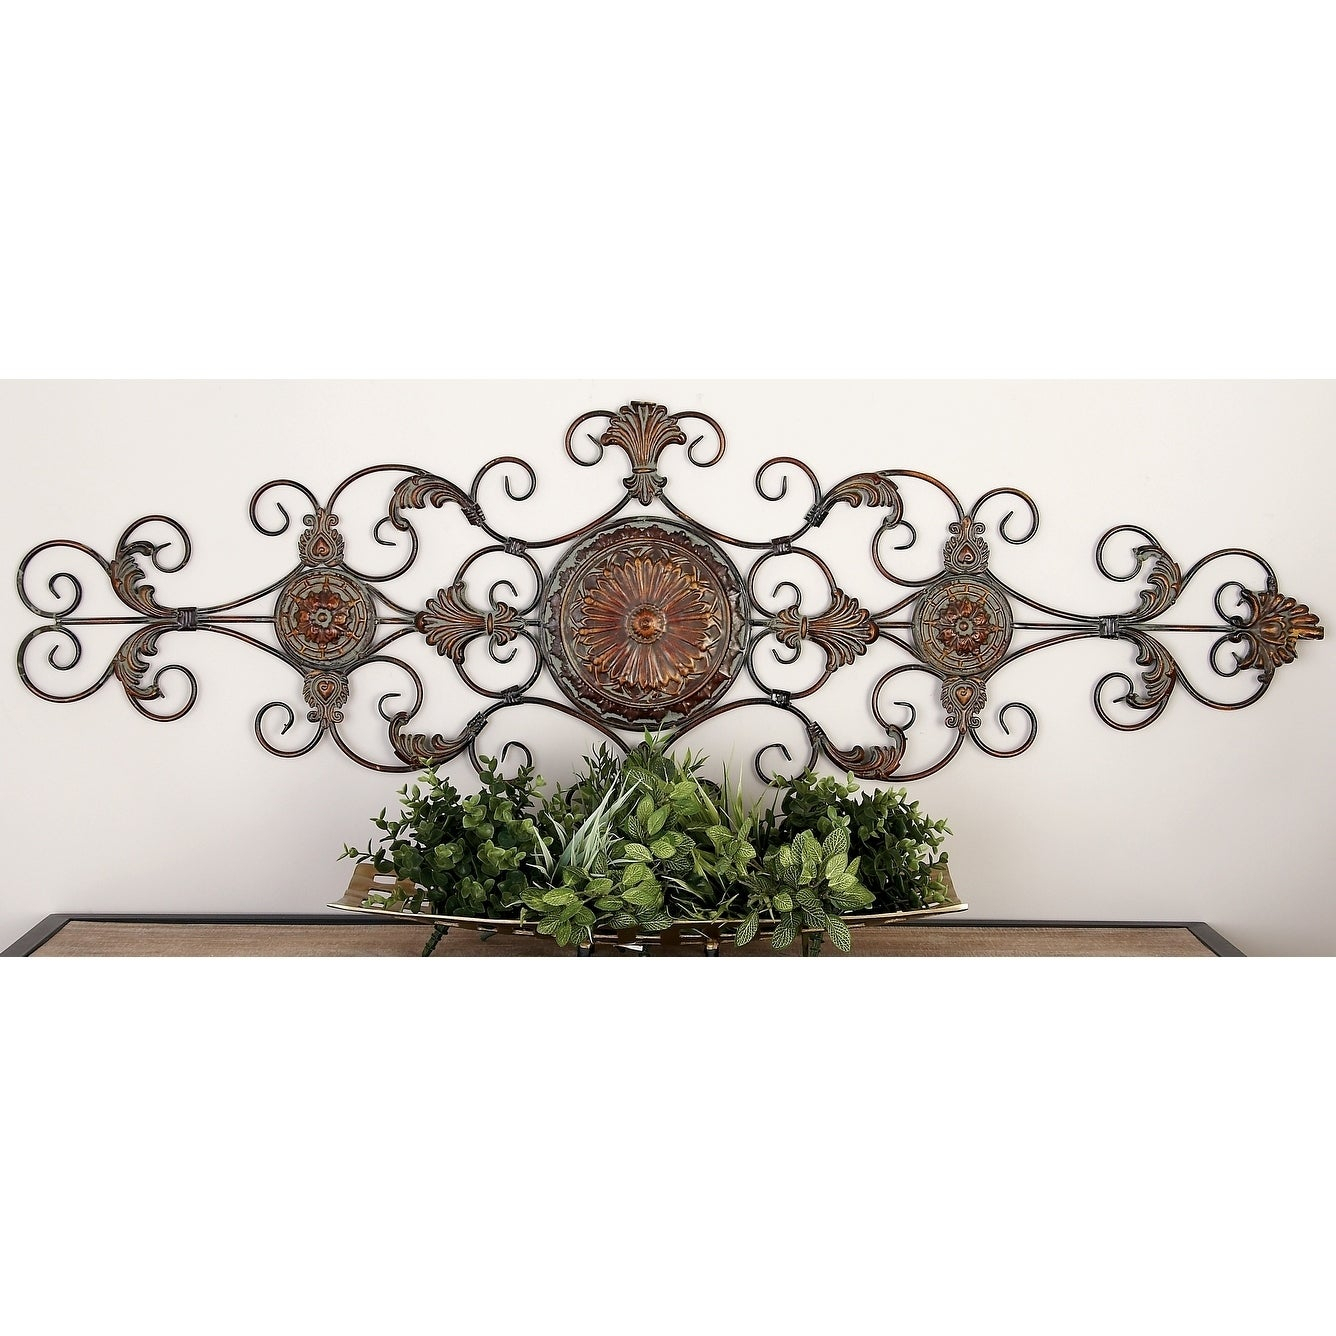 Shop Traditional 55 Inch Scroll And Acanthus Leaf Wall Decor Pertaining To Best And Newest Scroll Leaf Wall Decor (Gallery 5 of 20)